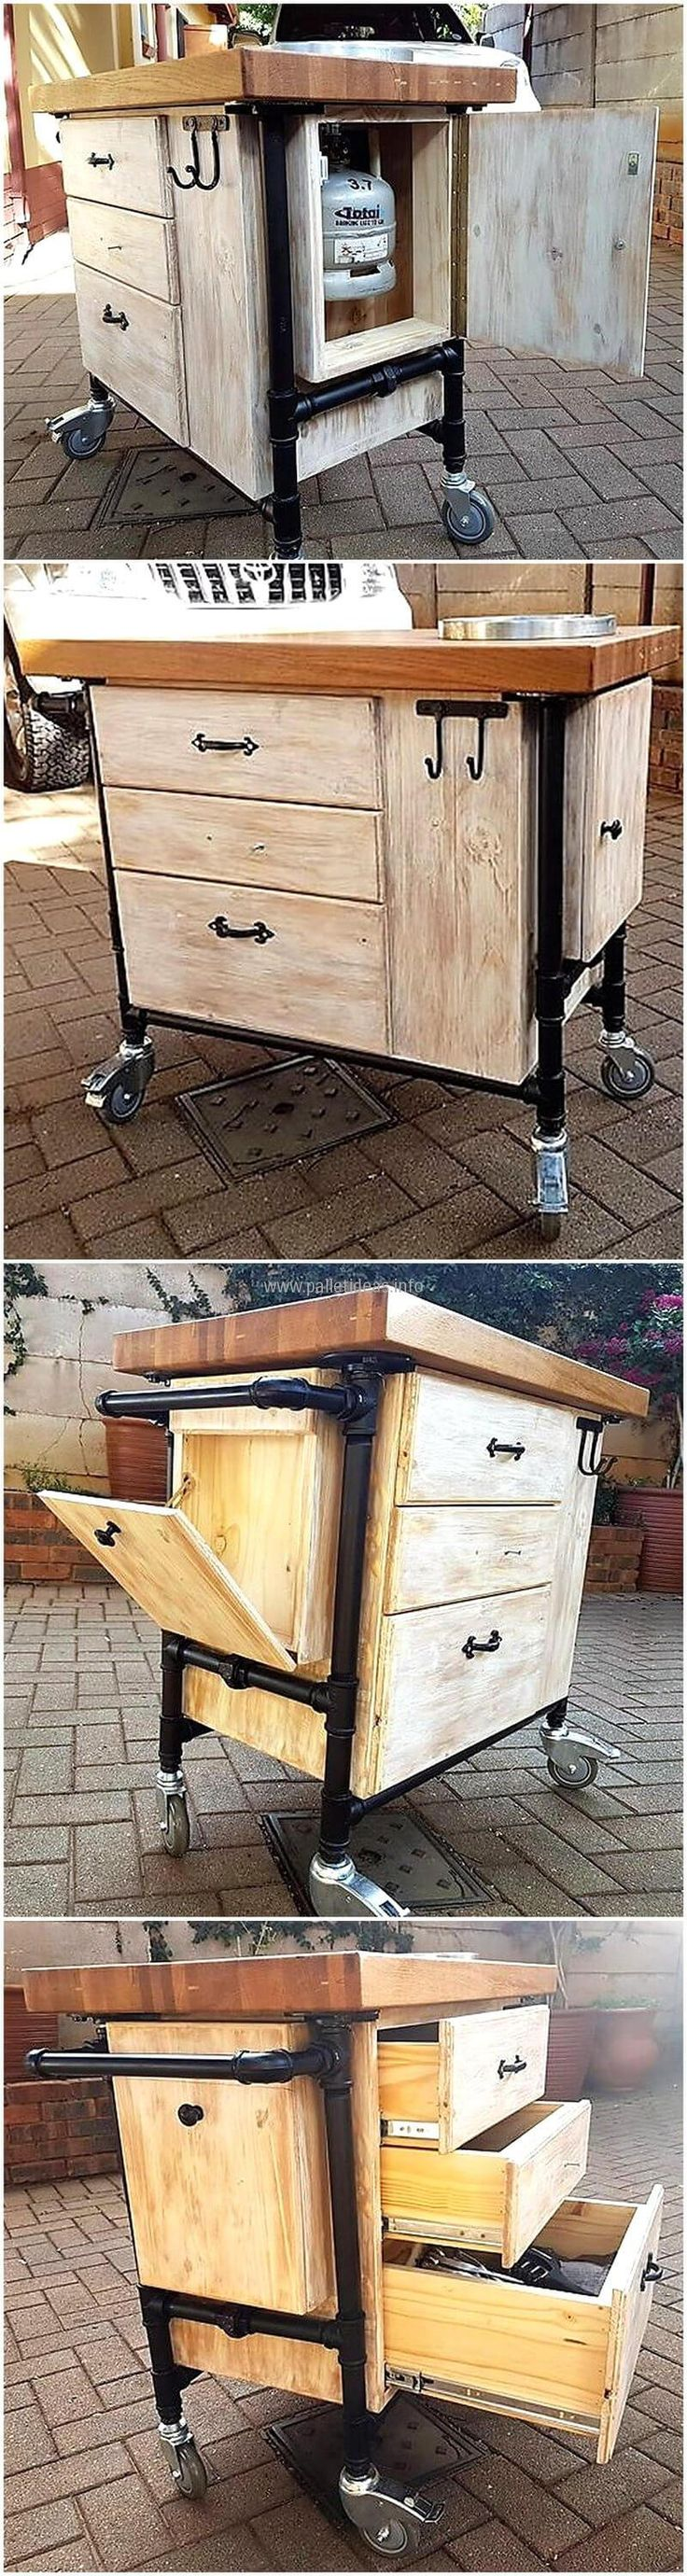 we would like to show an idea which can be copied for patio as well as for the kitchen. The cylinder can be fitted into the trolley and can be moved anywhere in the home. There are drawers in the trolley to store the items and hooks to hang the kitchen utensils.